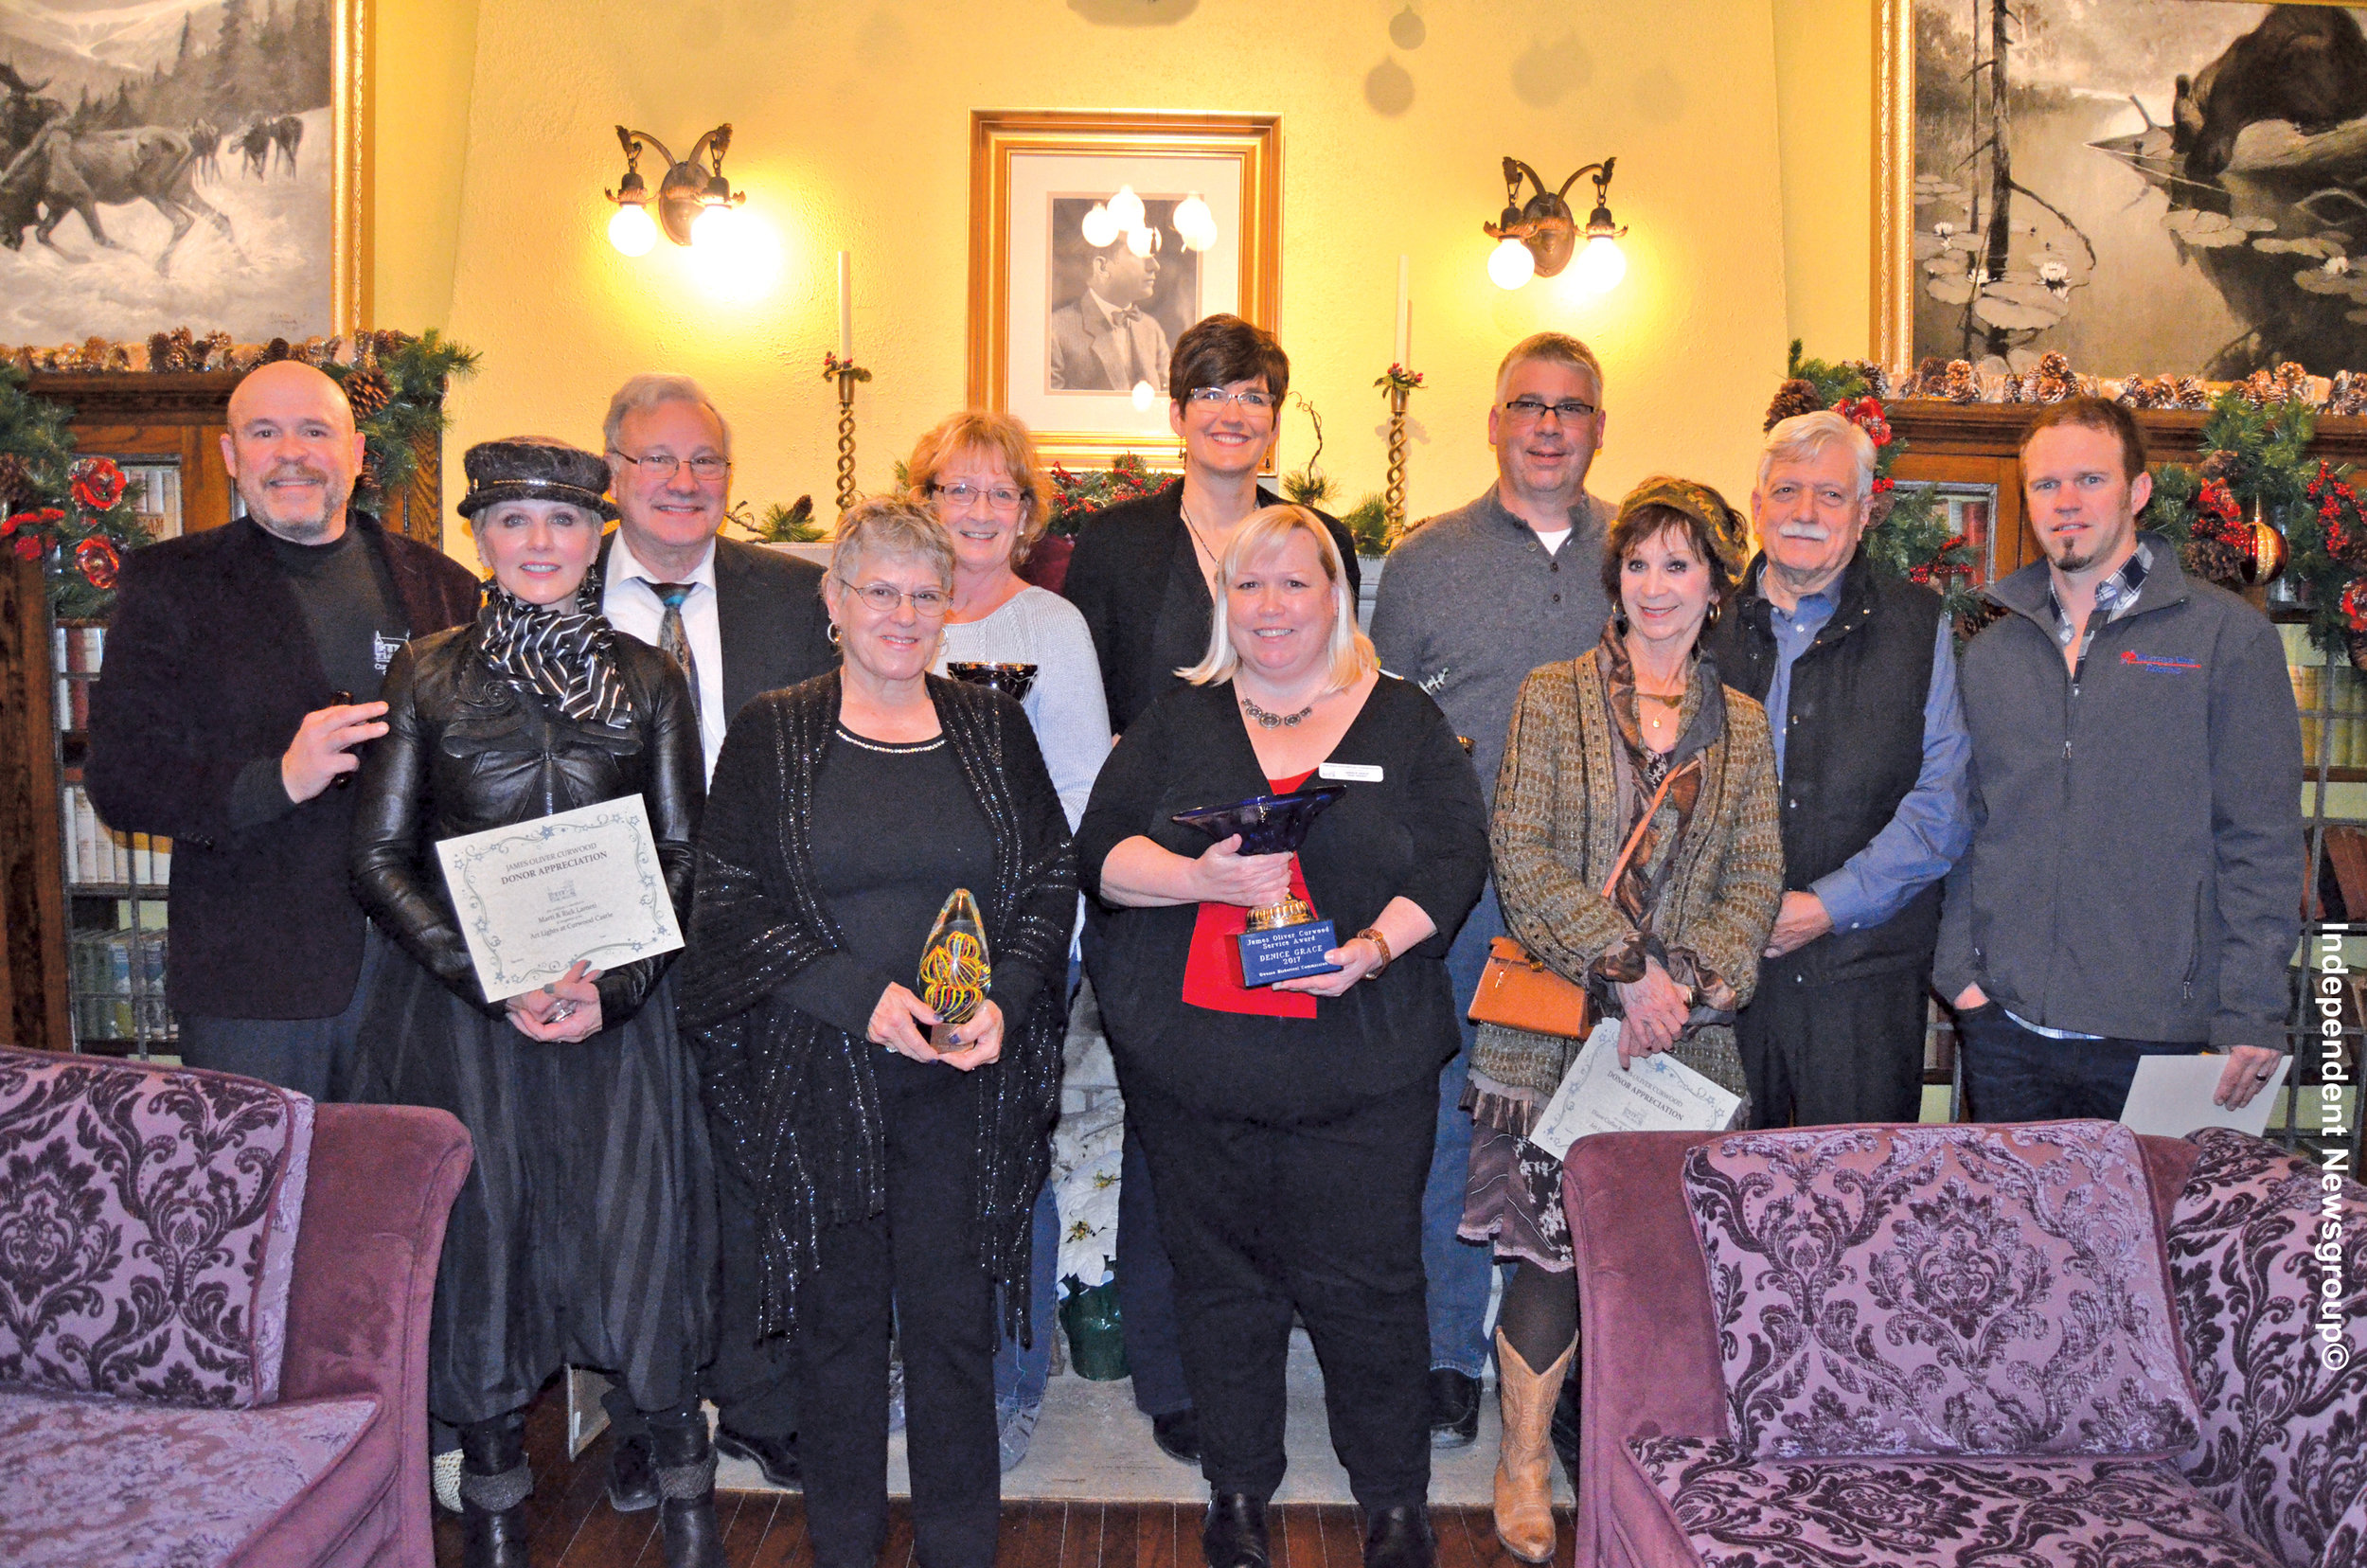 Owosso Historical Commission 2017 Volunteer and Donor Recognition Award Winners, left to right: Robert Doran, Executive Director; Marti Lameti & Rick Lameti, Donor Appreciation Award for Castle Art Lights; Elaine Greenway, Director's Award; Linda Thorsby, Volunteer of the Year Award; Denice Grace, James Oliver Curwood Service Award; Sue Ludington & Carl Ludington, Volunteer of the Year Award; Diane Cutler and Dr. Dan Williams, Donor Appreciation Award for Castle Art Lights; Kris Poag of Weather Vane Roofing, Donor Appreciation Award for new roof on Paymaster Building.